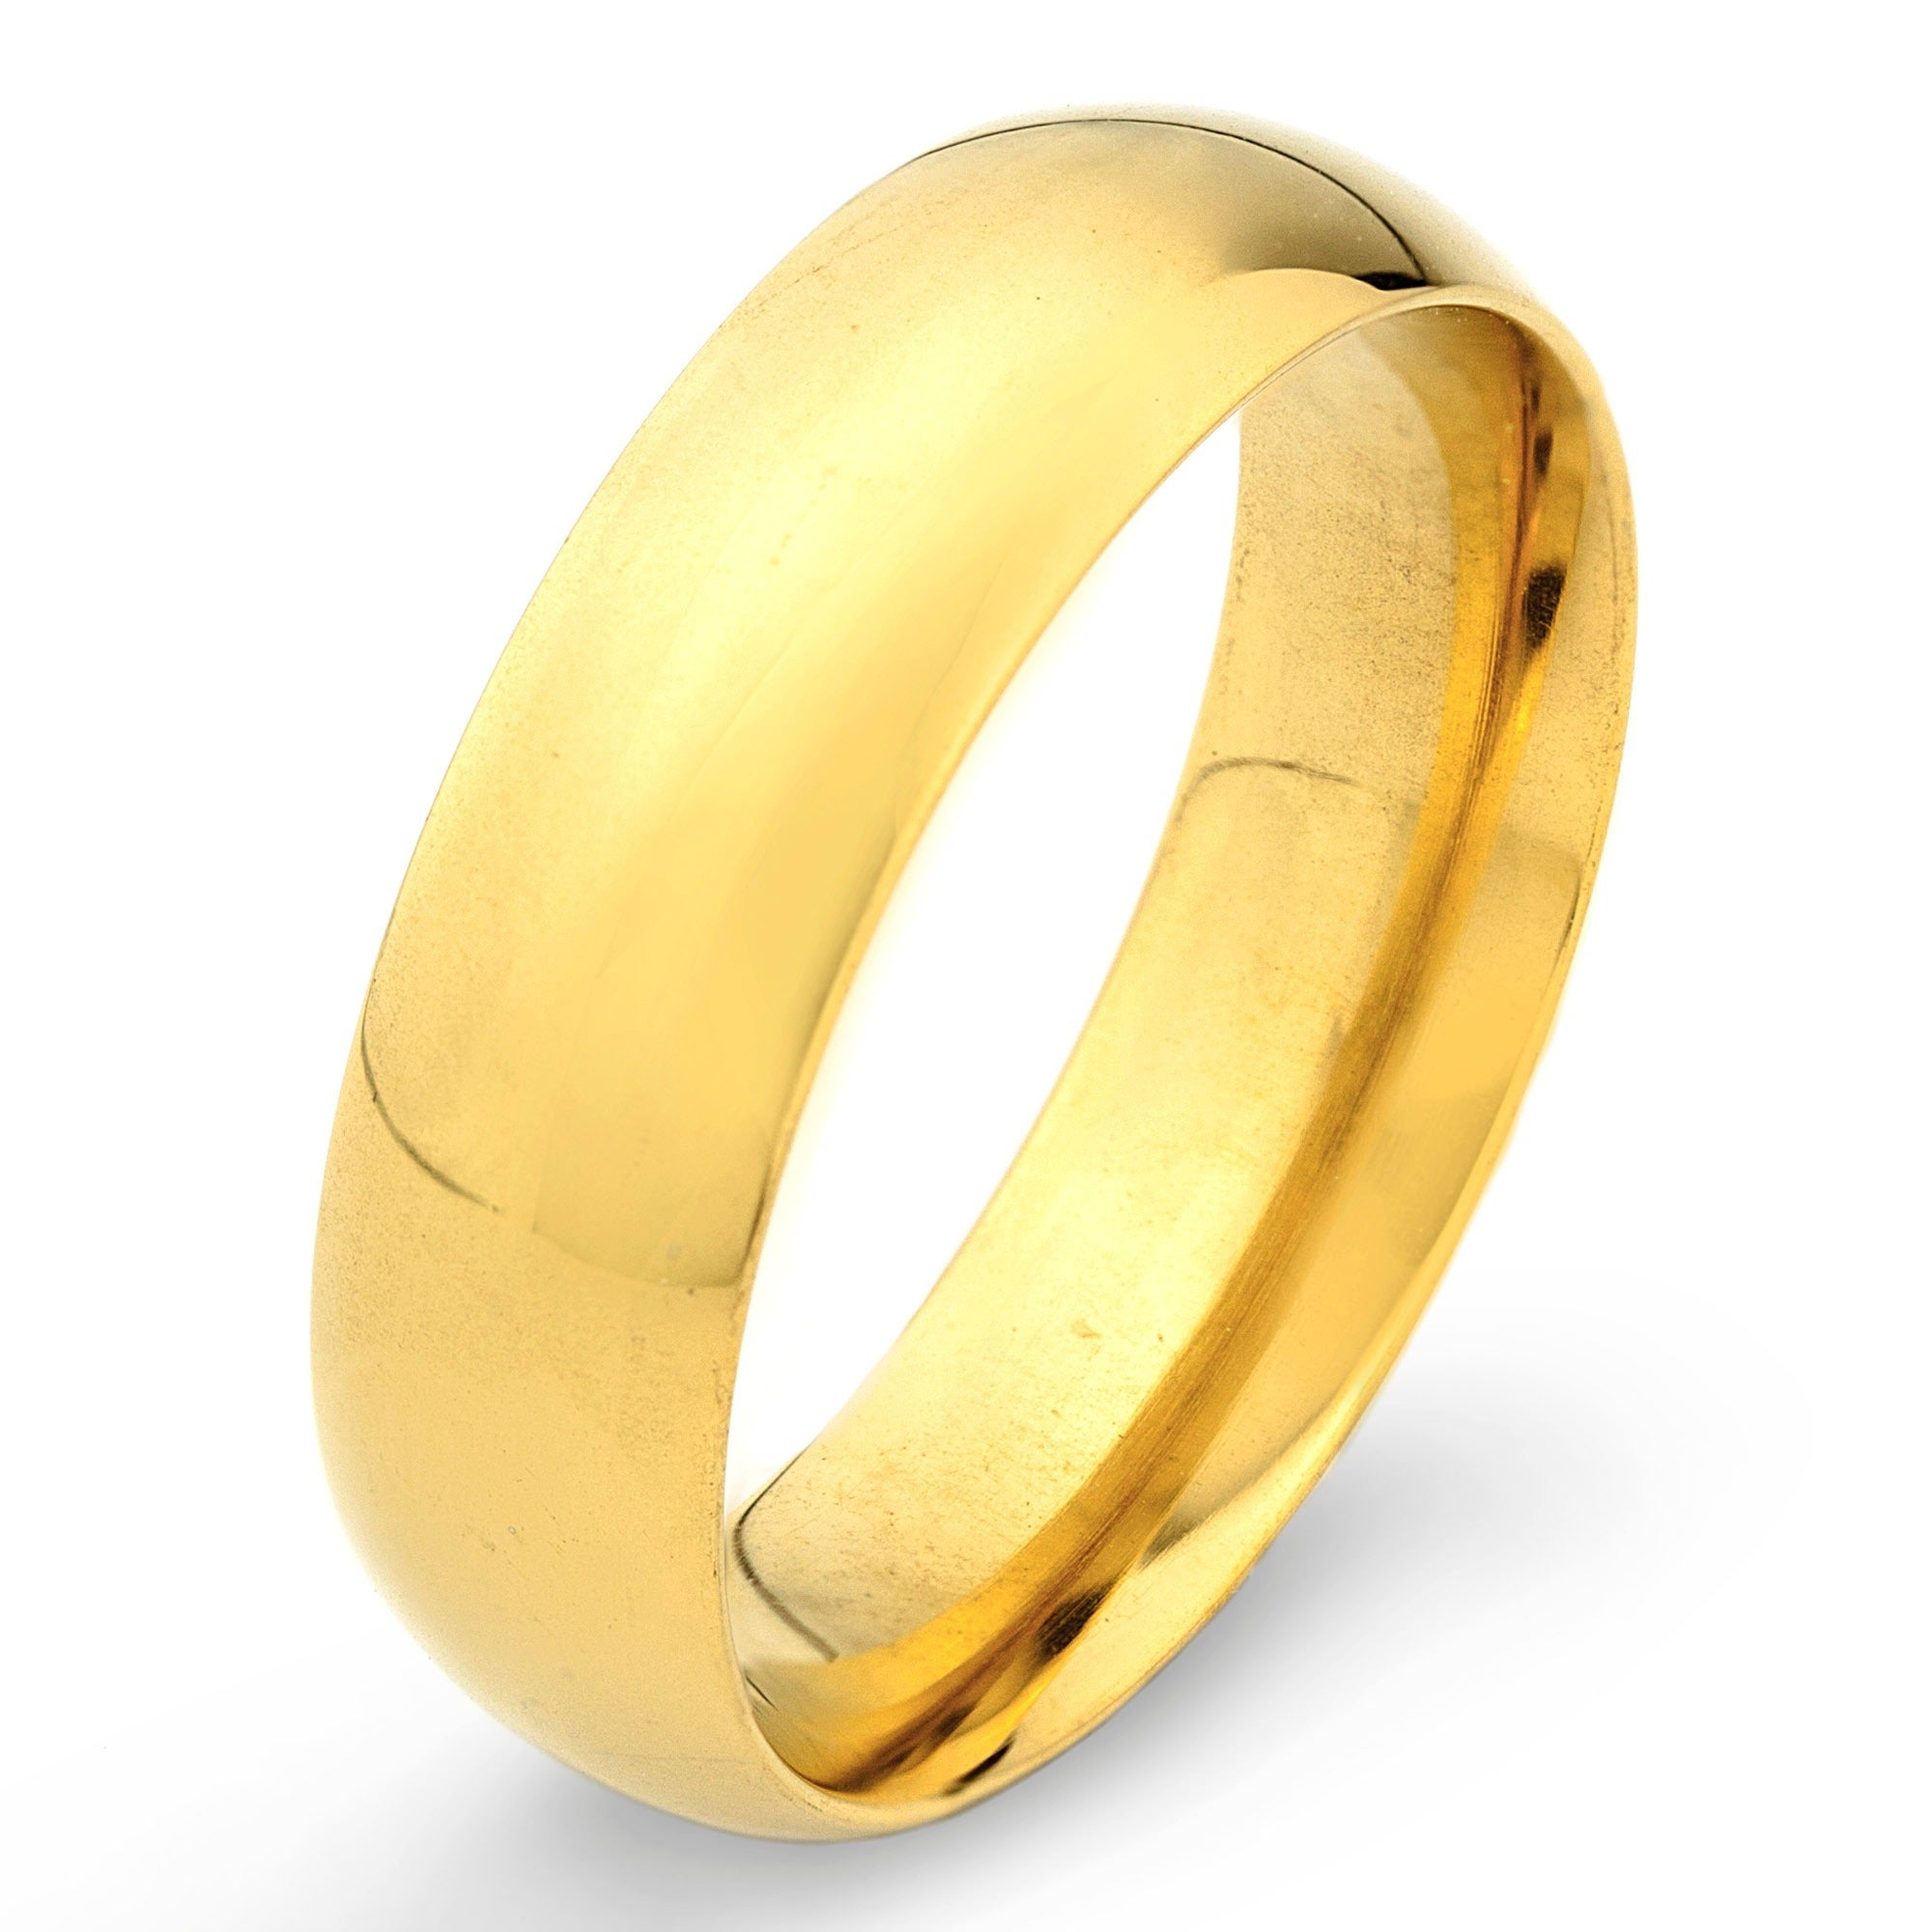 stainless steel goldplated wedding band ring 6mm free shipping